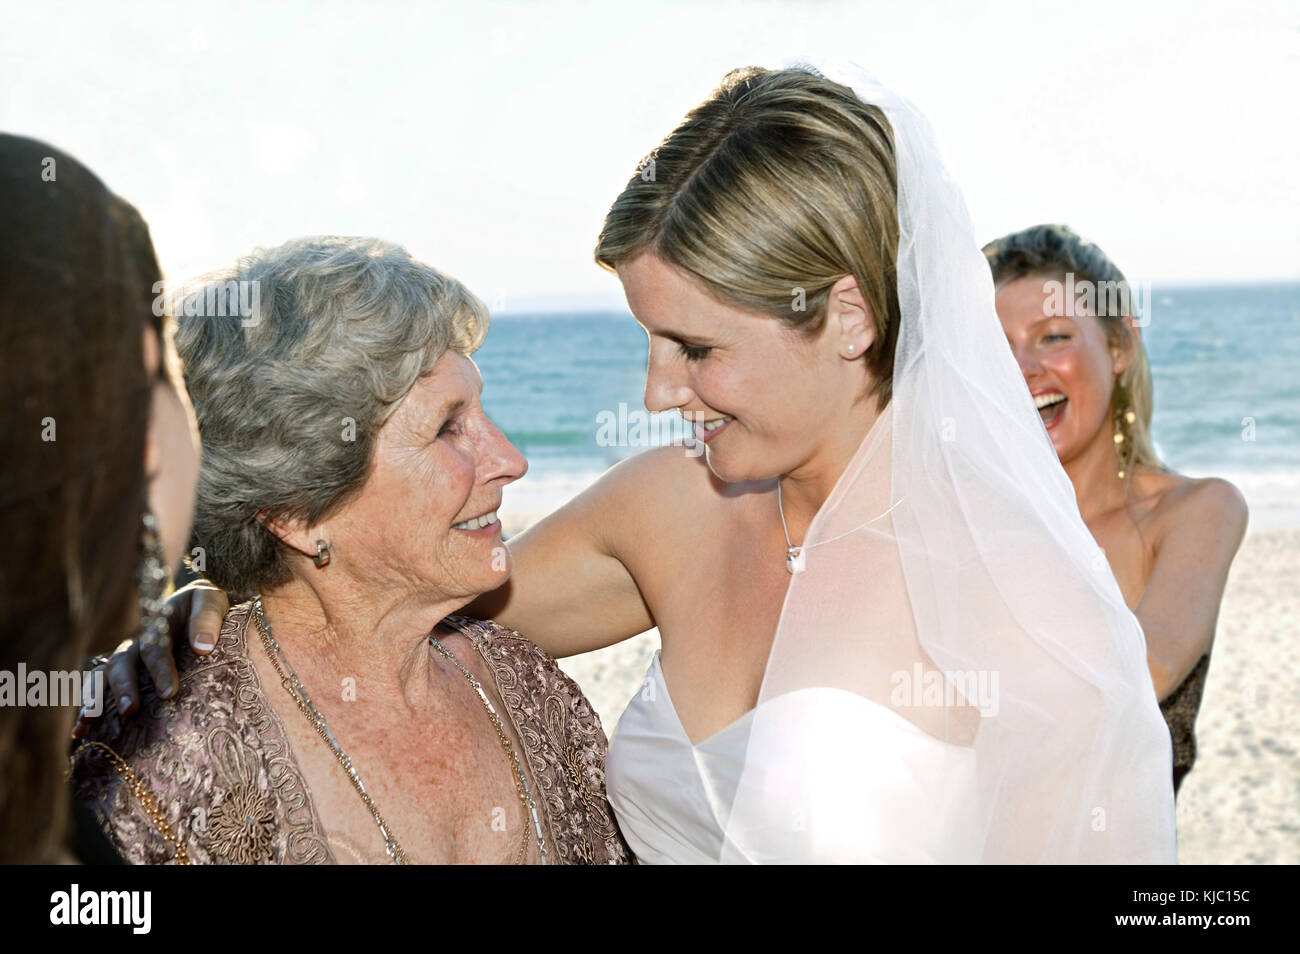 Bride With Mother On The Beach - Stock Image